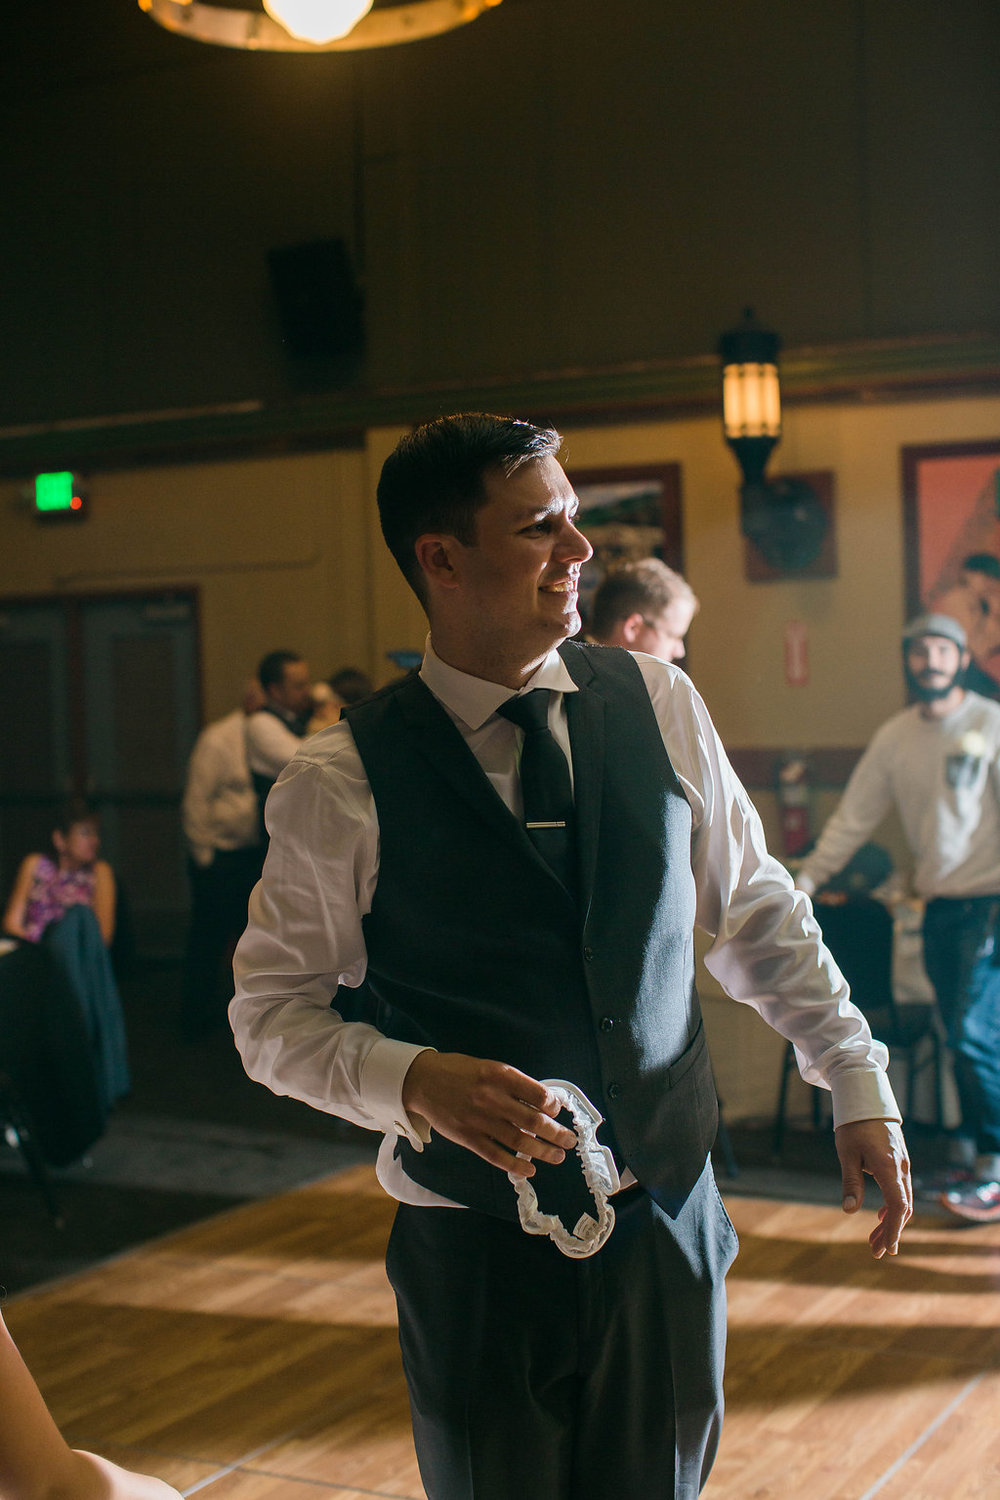 Nicole+Joe_Wedding_Seattle_McMennaminsBothell_6242015_128.jpg